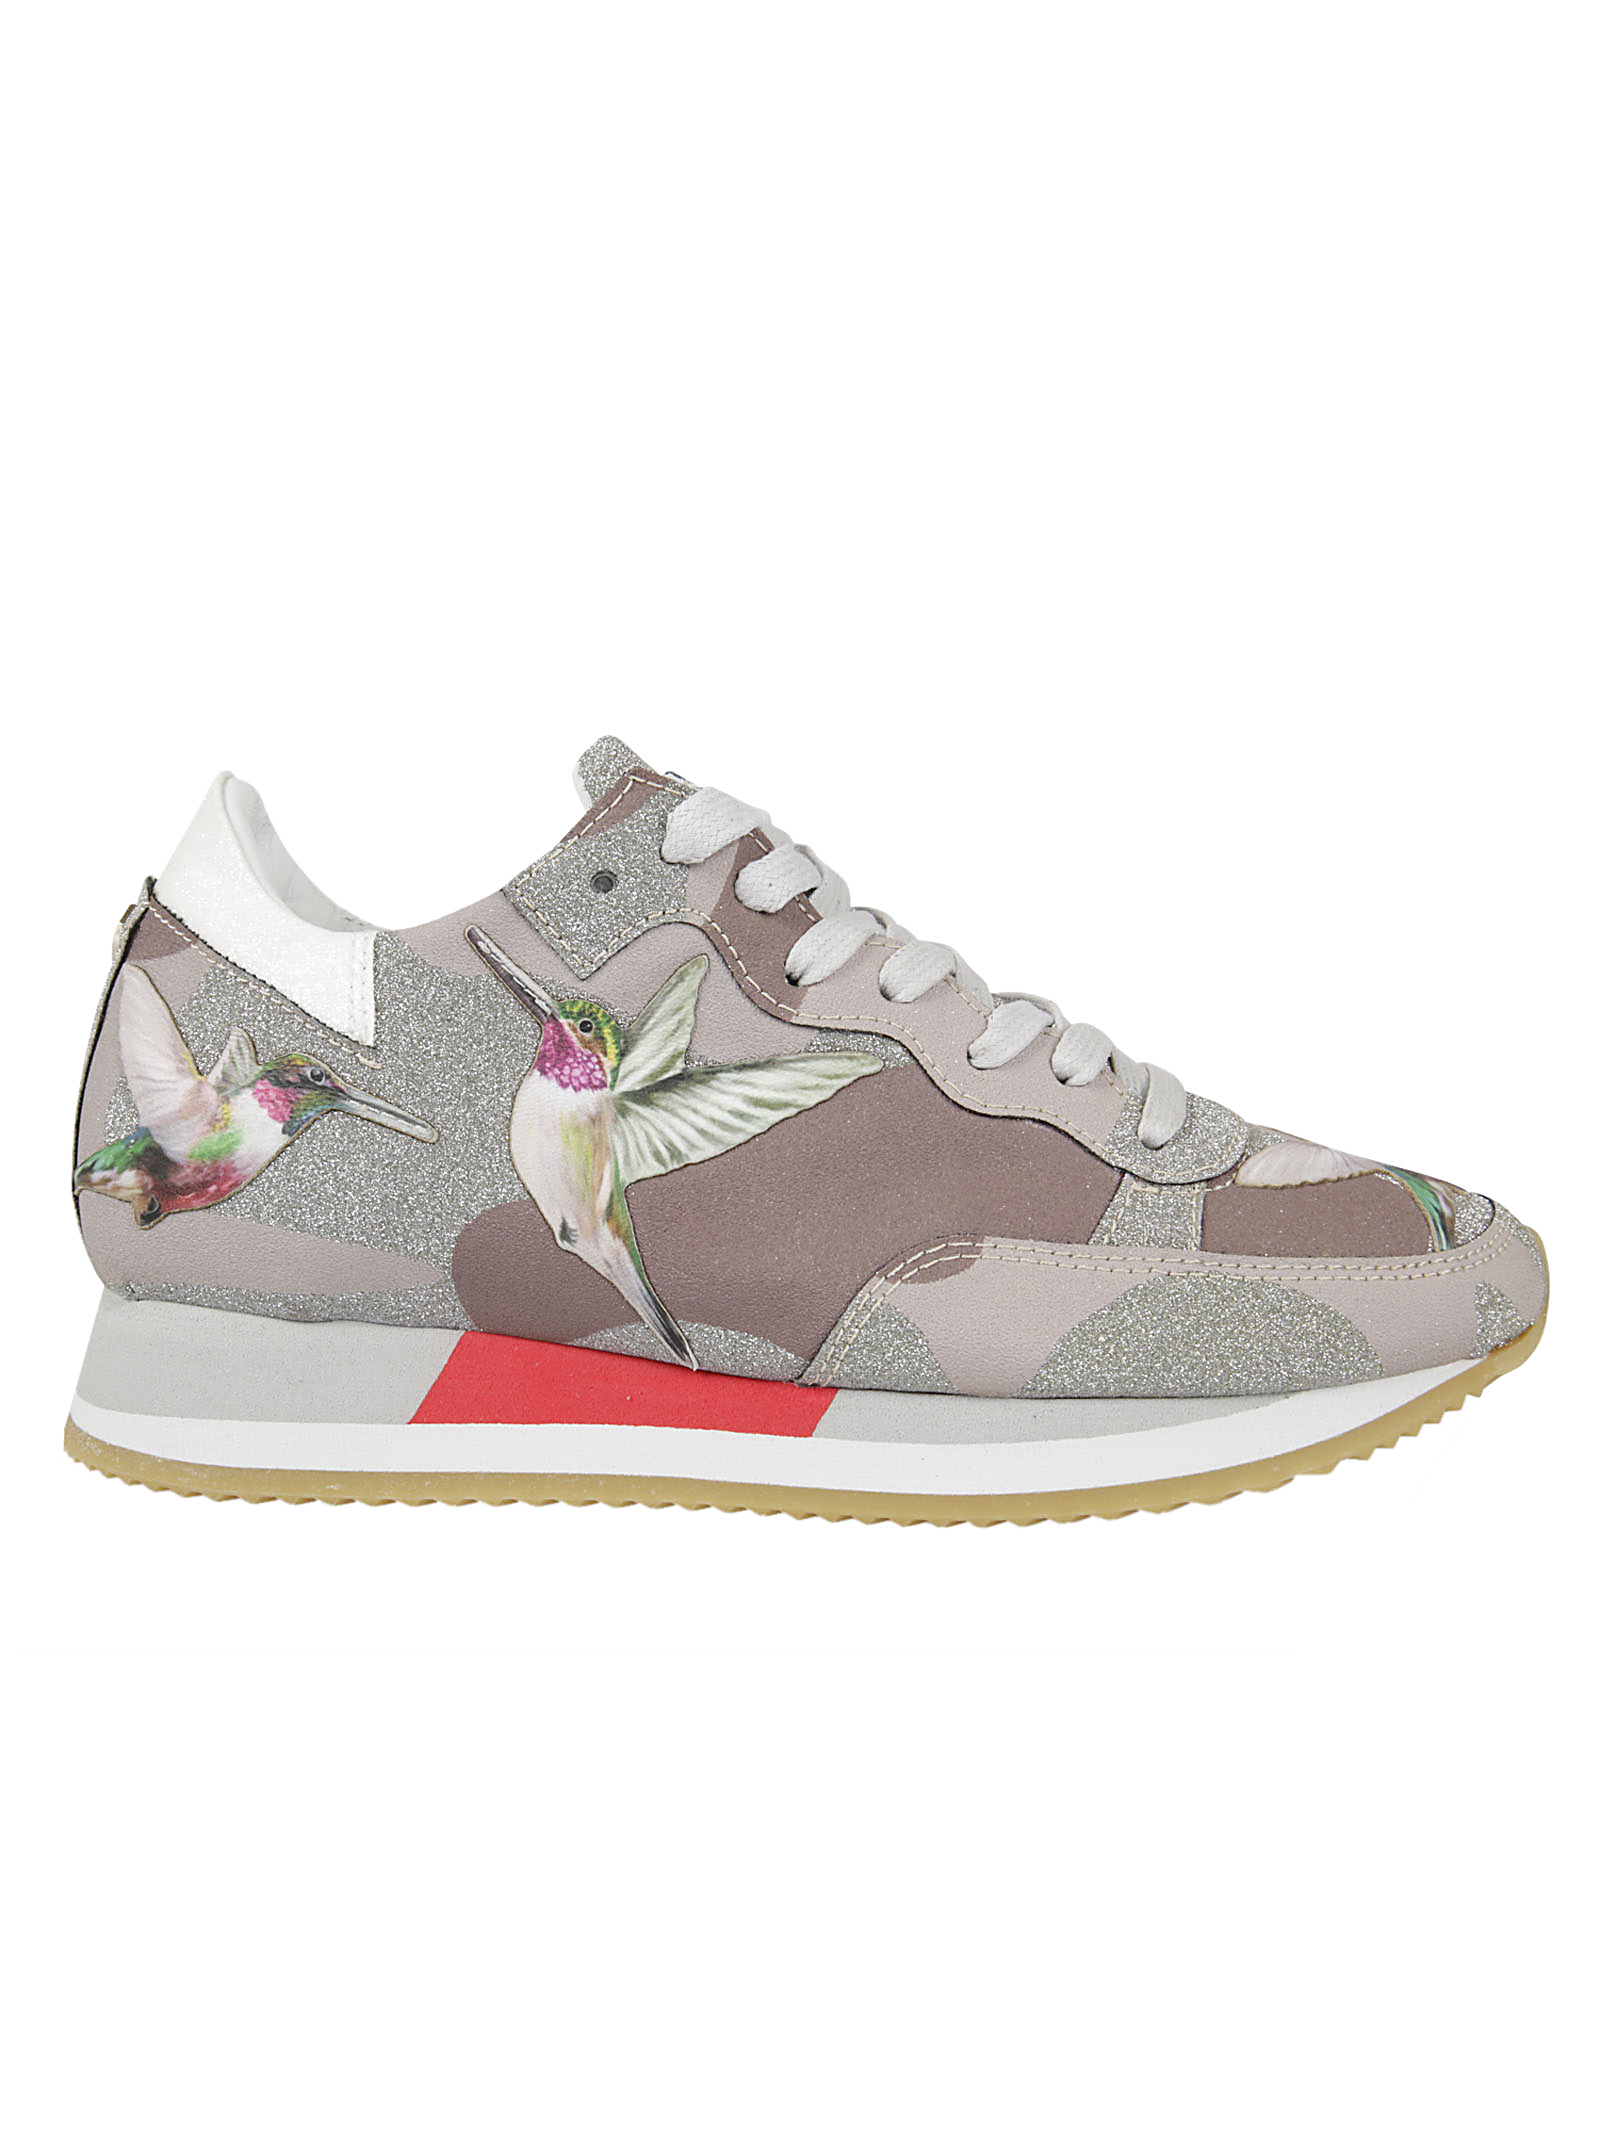 Philippe Model Philippe Model Bird Print Sneakers